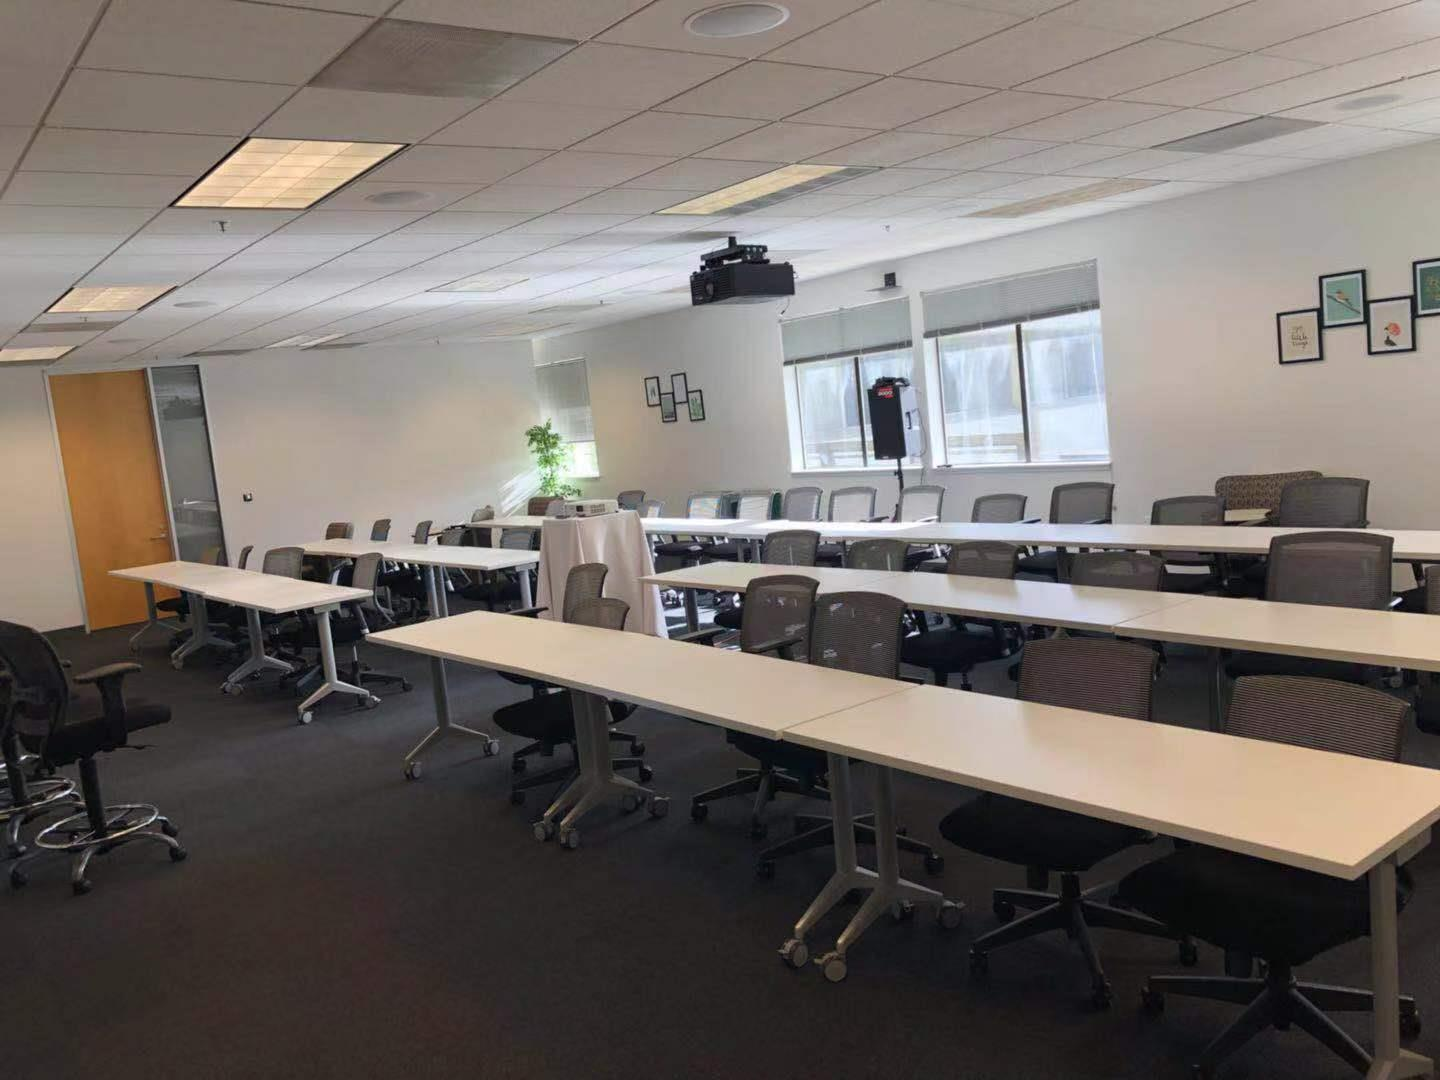 2 Waters Park - Team Space(classroom style)